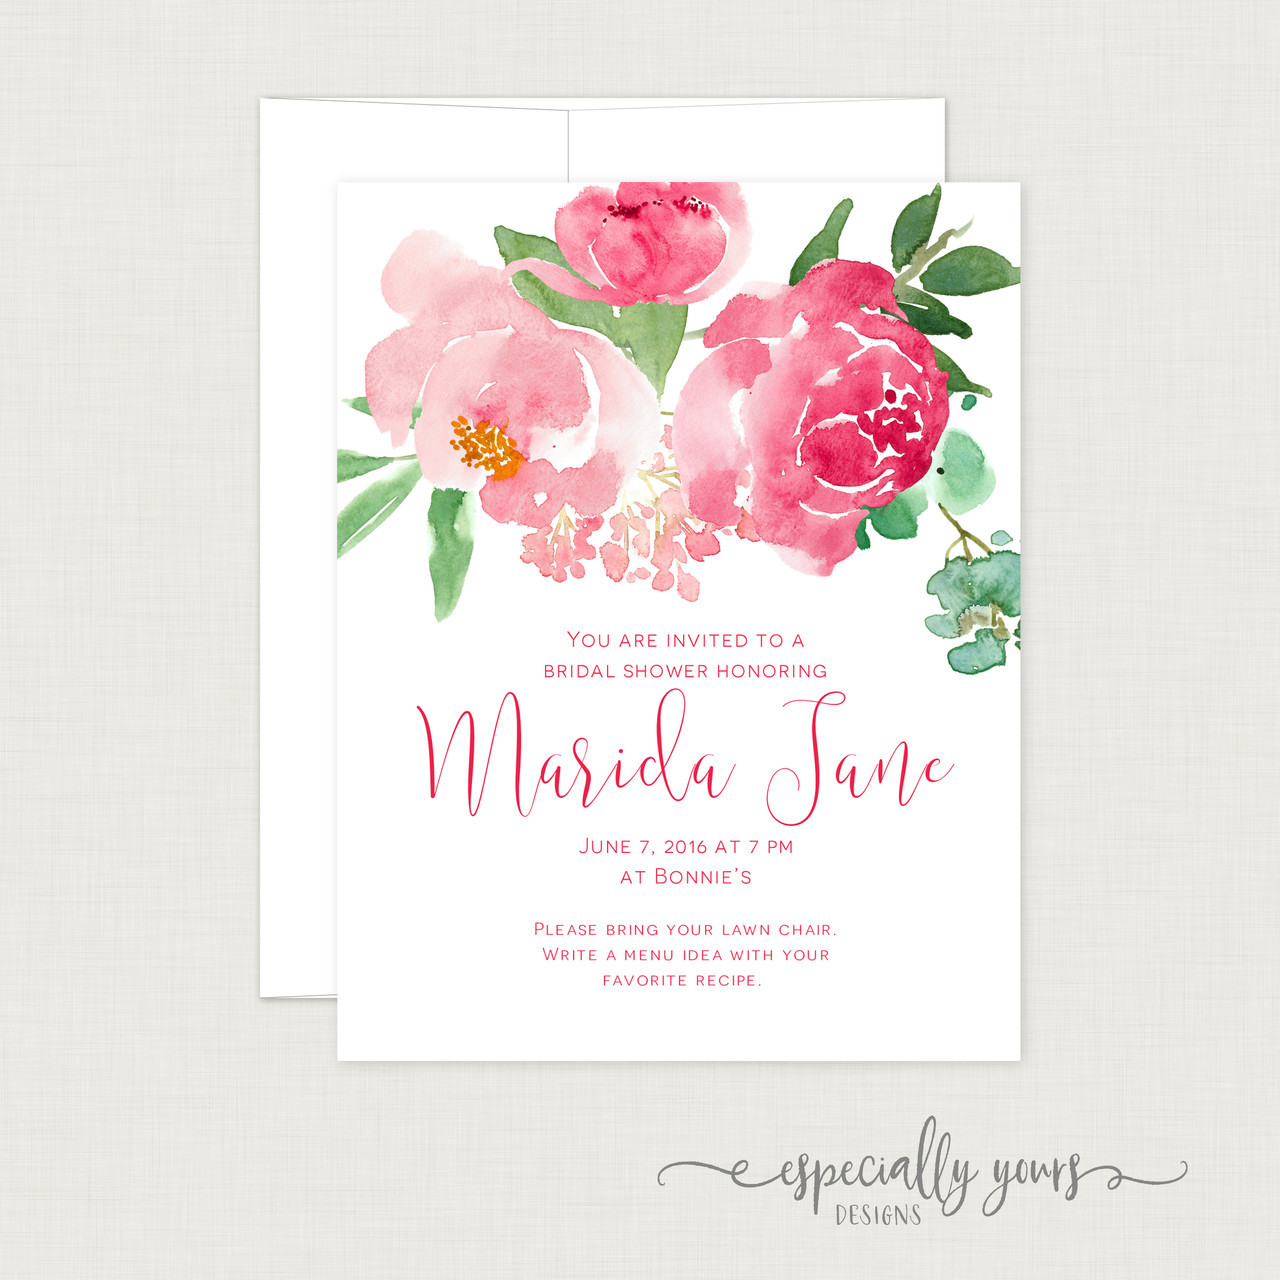 Pink & Green Floral Bridal Shower Invitation - Especially Yours Designs